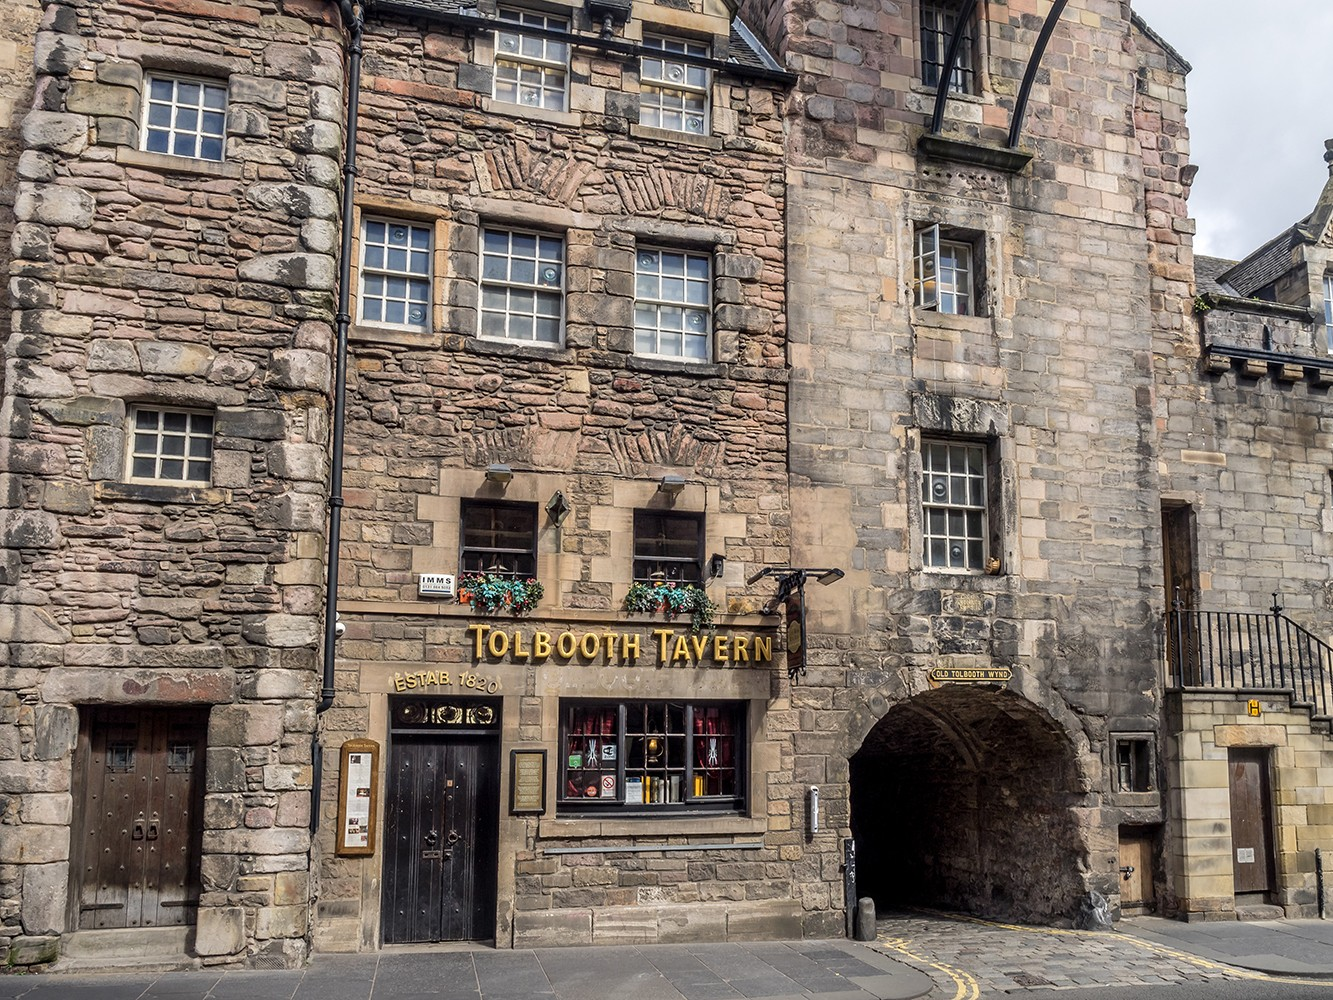 Tolbooth Tavern - Best places to take Instagram photos in Edinburgh Scotland by travel blogger My Beauty Bunny - Best Photo Spots in Edinburgh that are Instagram Friendly featured by popular Los Angeles travel blogger, My Beauty Bunny